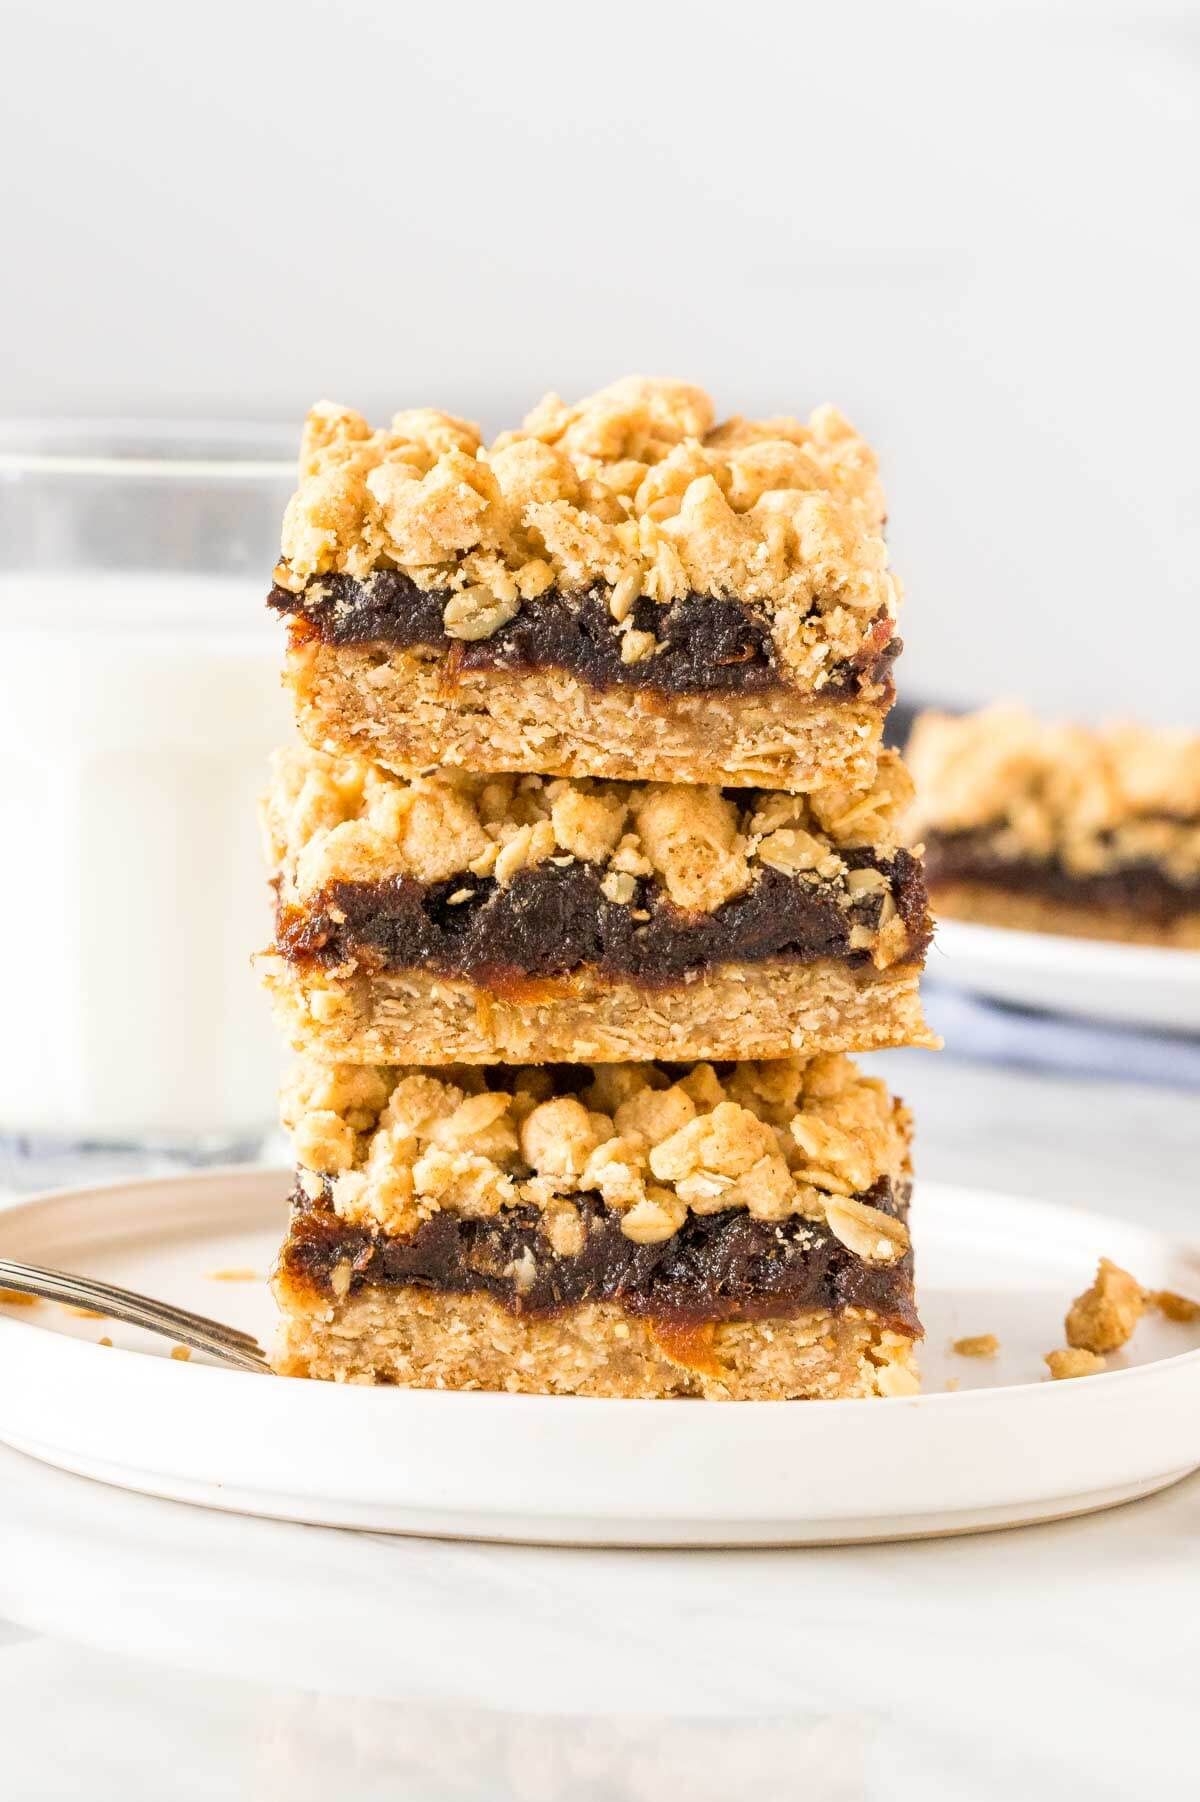 Stack of 3 date squares with oatmeal crumble topping.